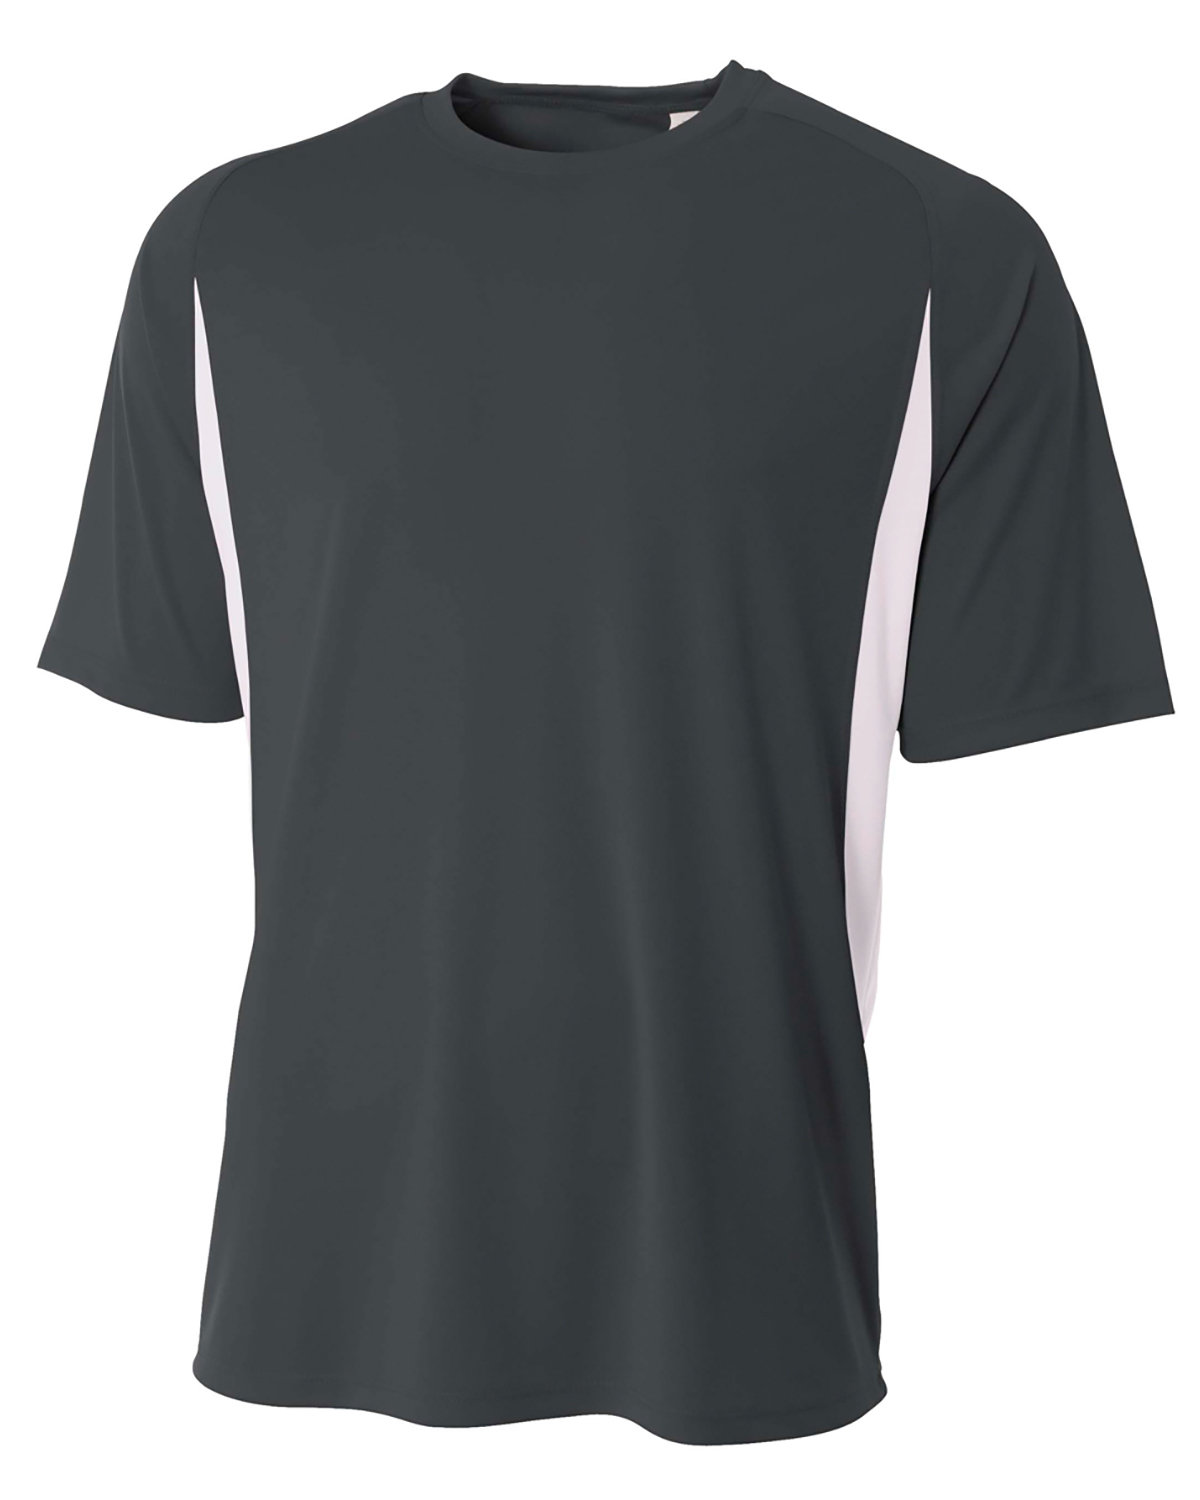 A4 Youth Cooling Performance Color Blocked T-Shirt GRAPHITE/ WHITE